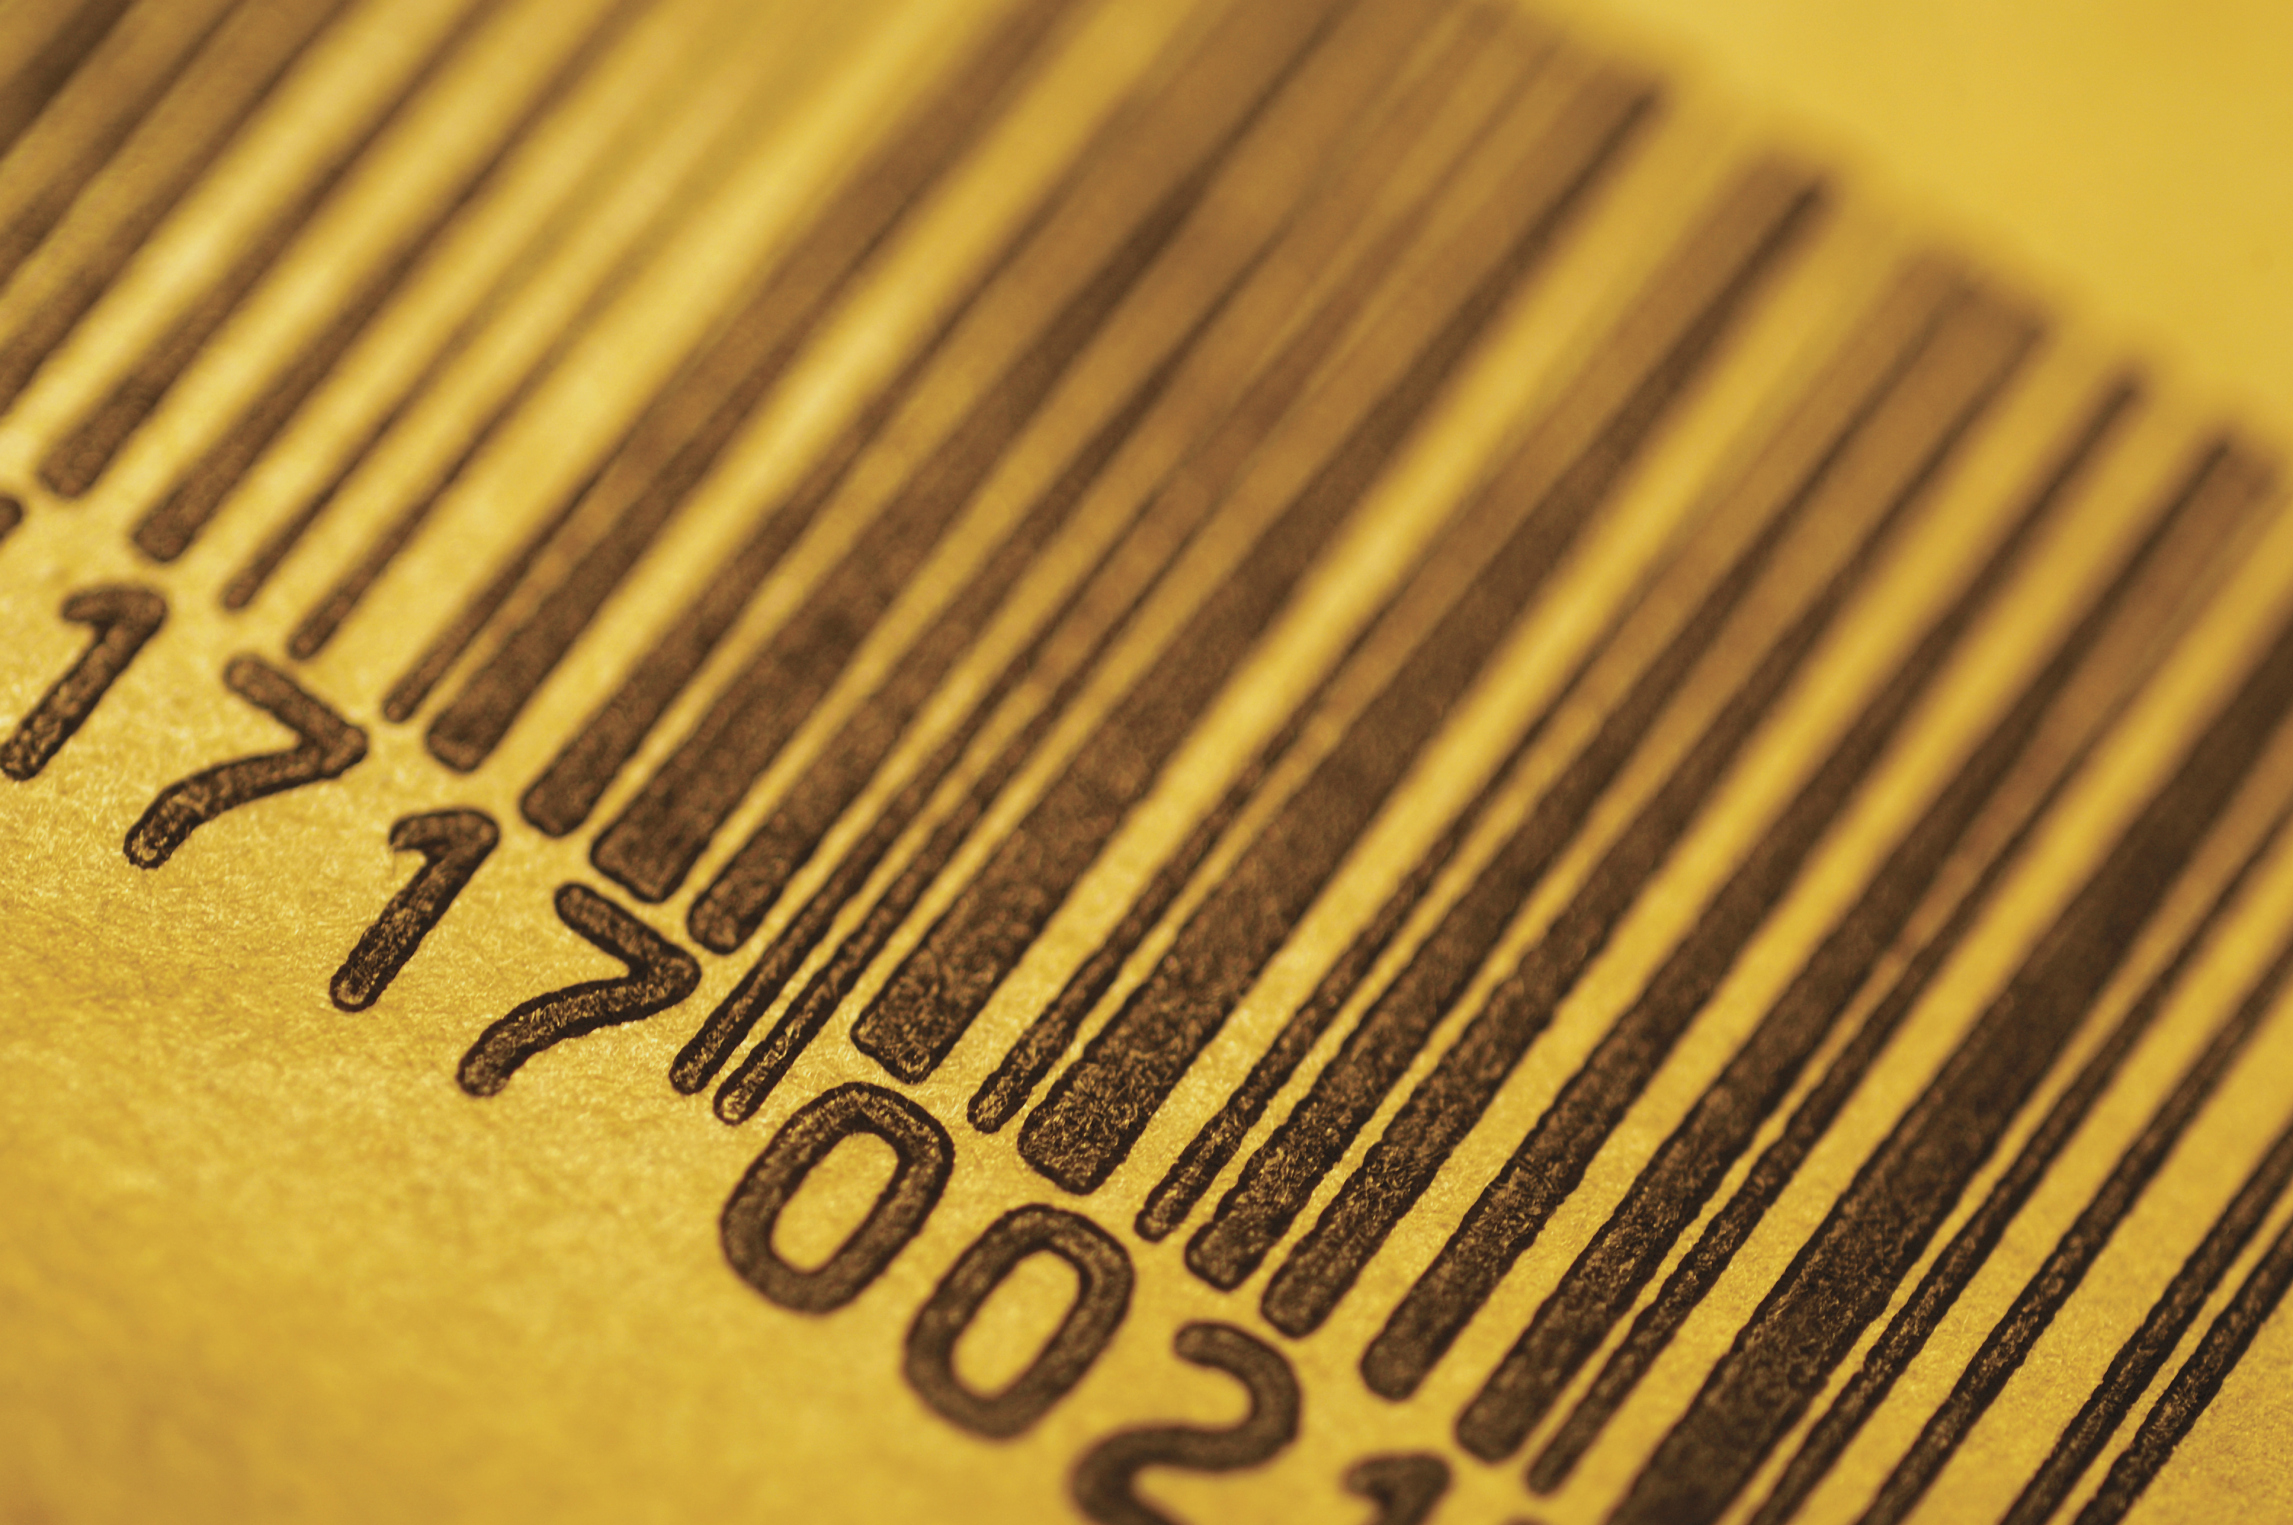 How to Identify a Manufacturer by Barcode | Bizfluent